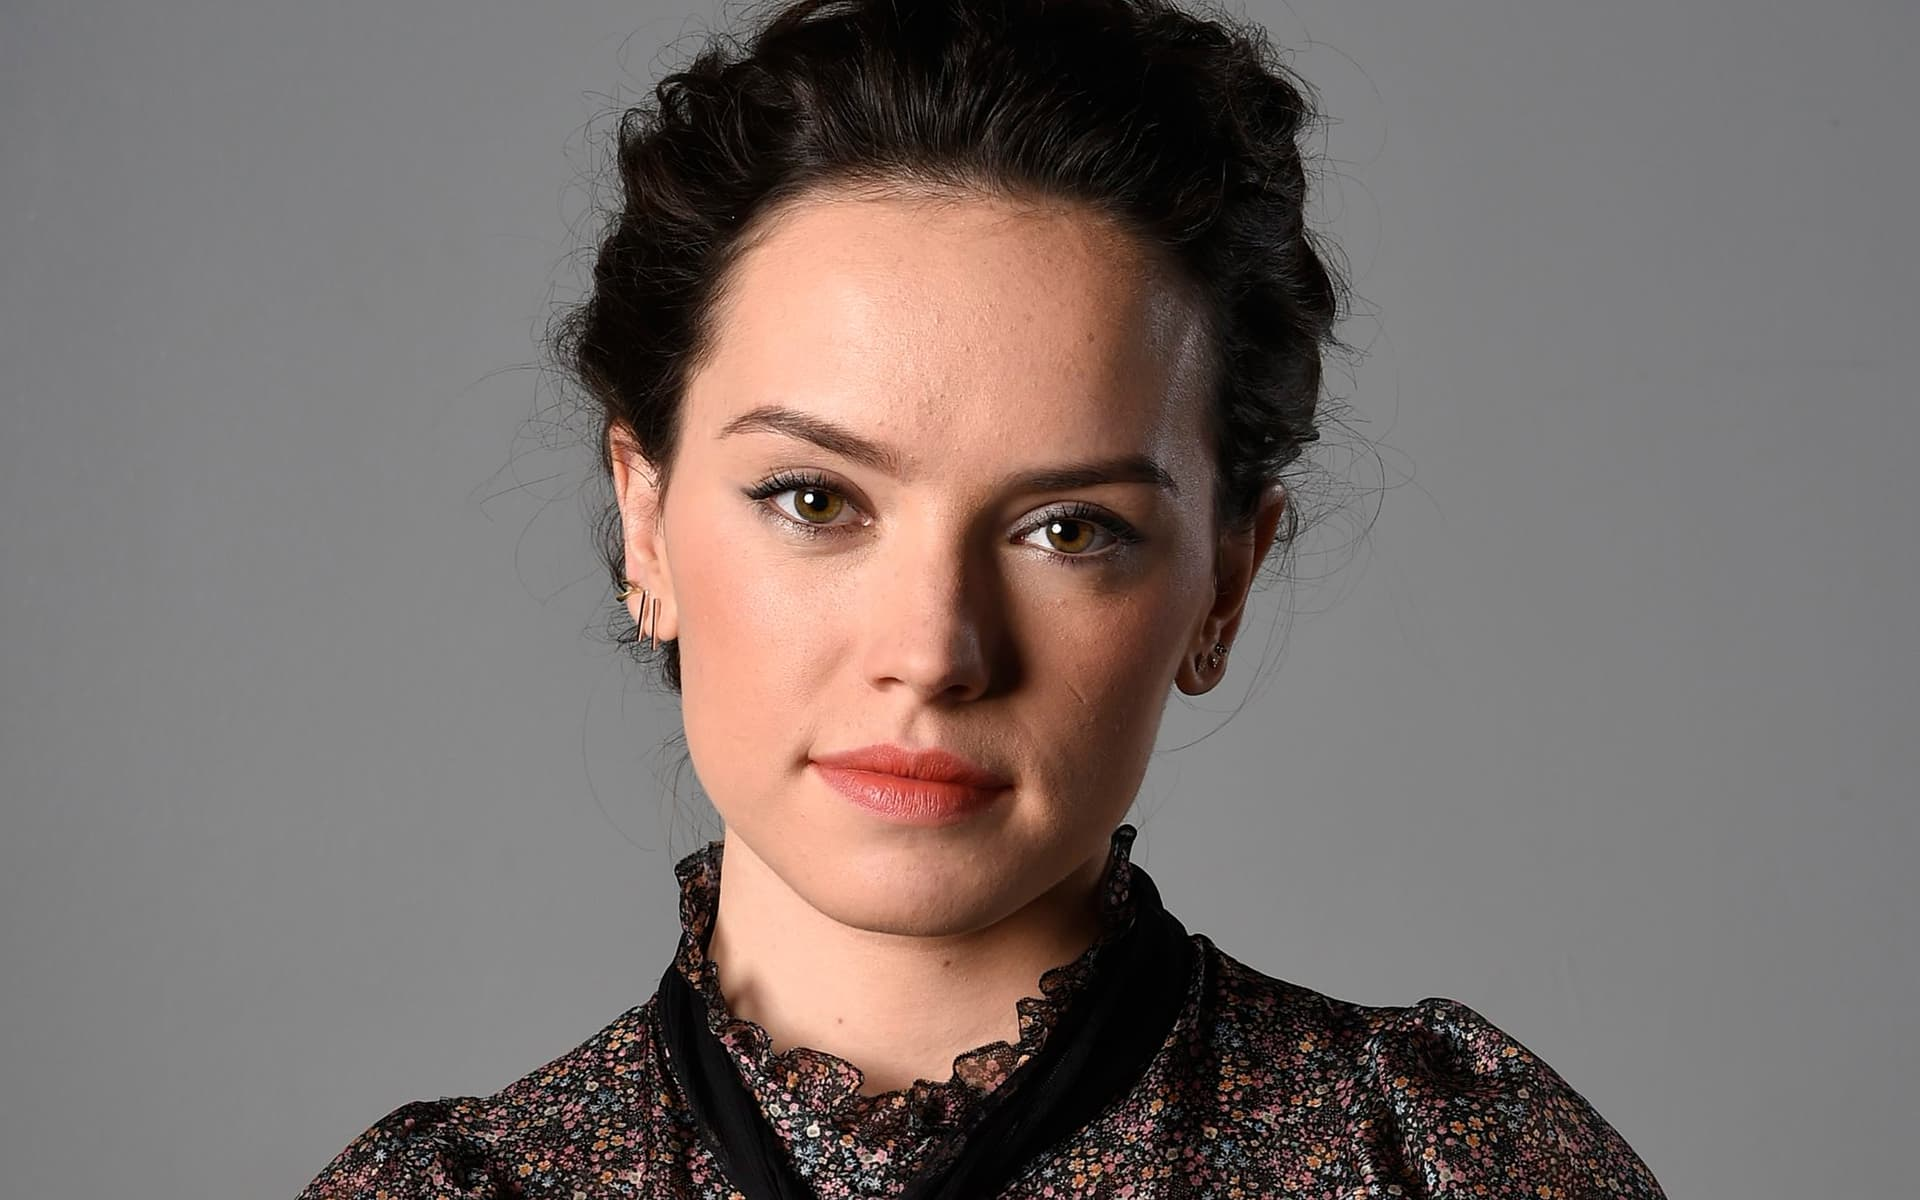 Black Daisy Wallpaper 10 Daisy Ridley Wallpapers High Quality Resolution Download